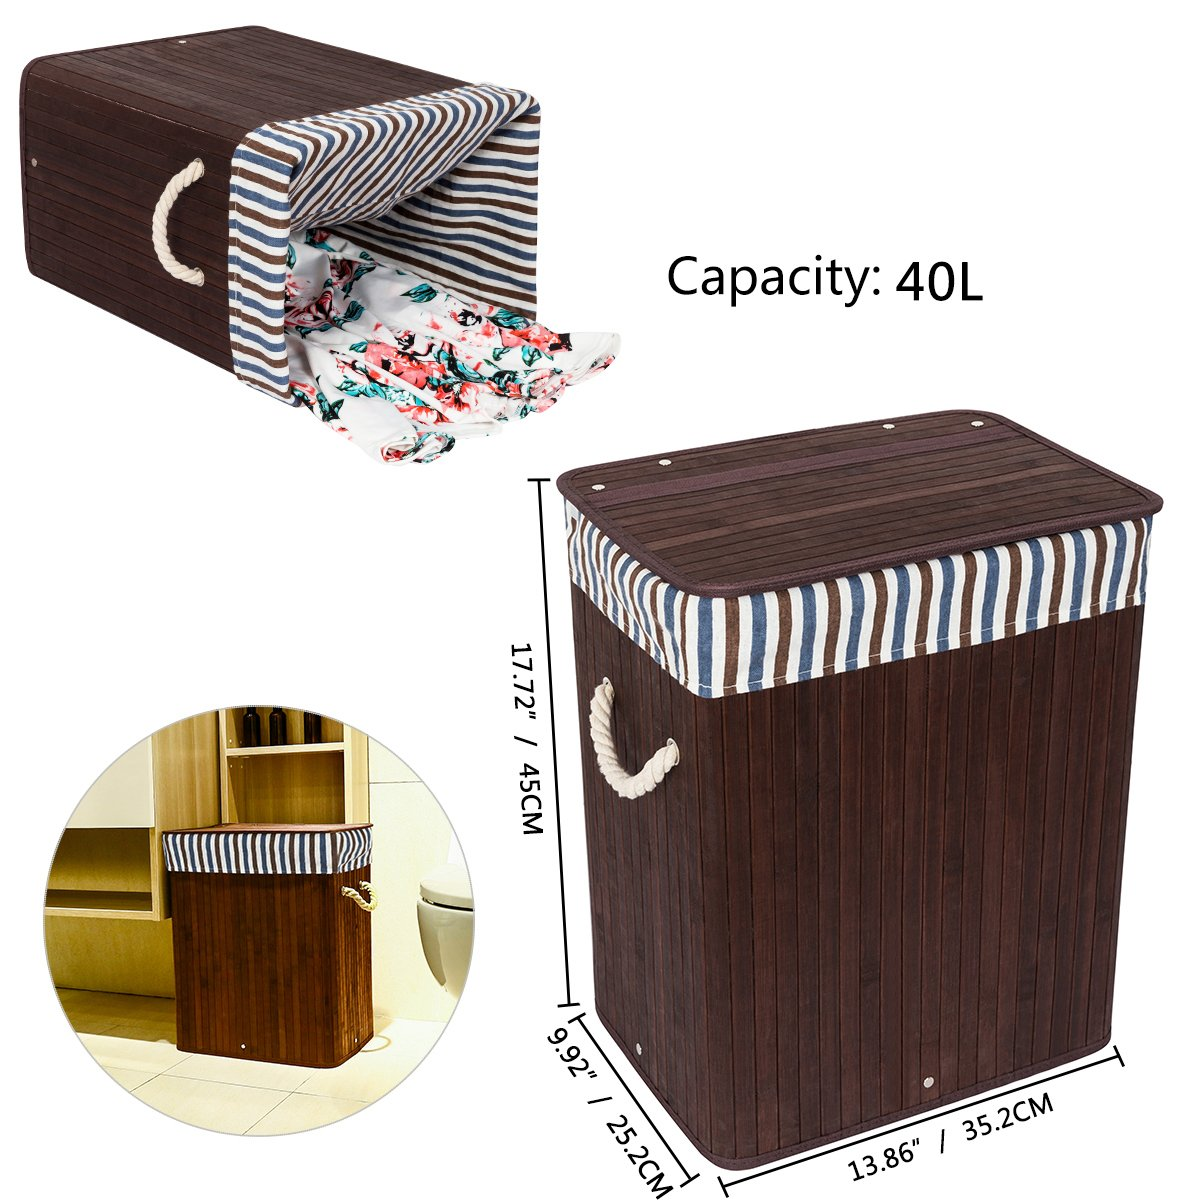 WOWLIVE Bamboo Laundry Hamper Lid Laundry Basket Rectangular Collapsible Organizer Dirty Clothes Washing Bin (40L)